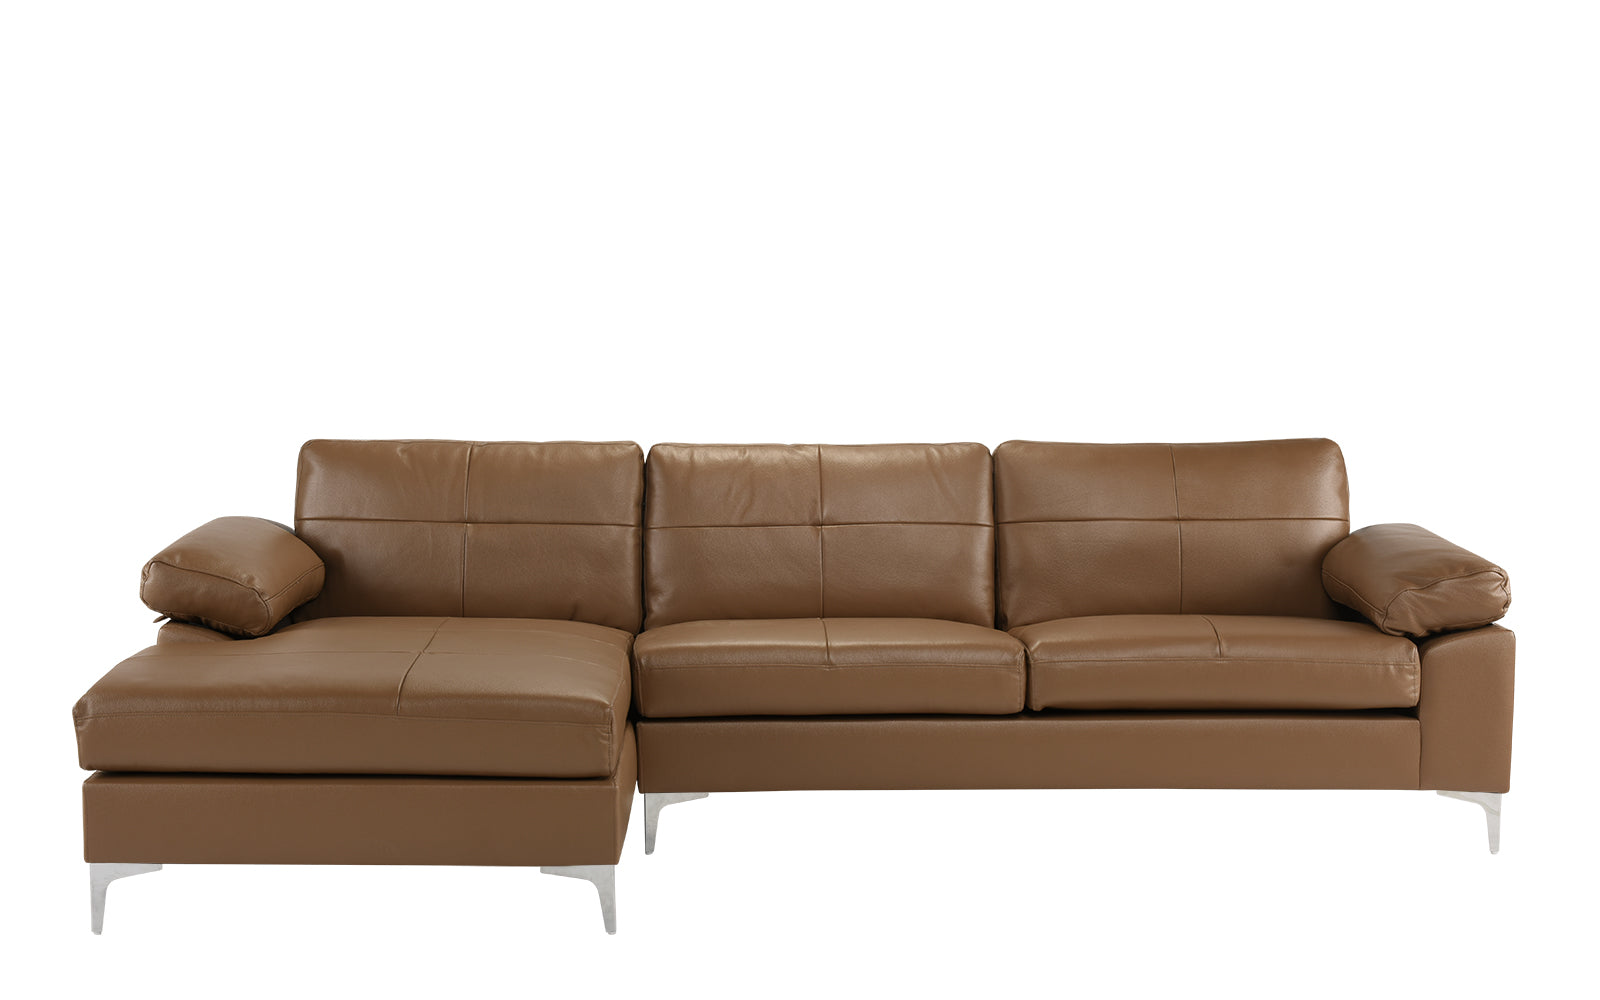 Leather L Shape Sectional Sofa Left Chaise Image